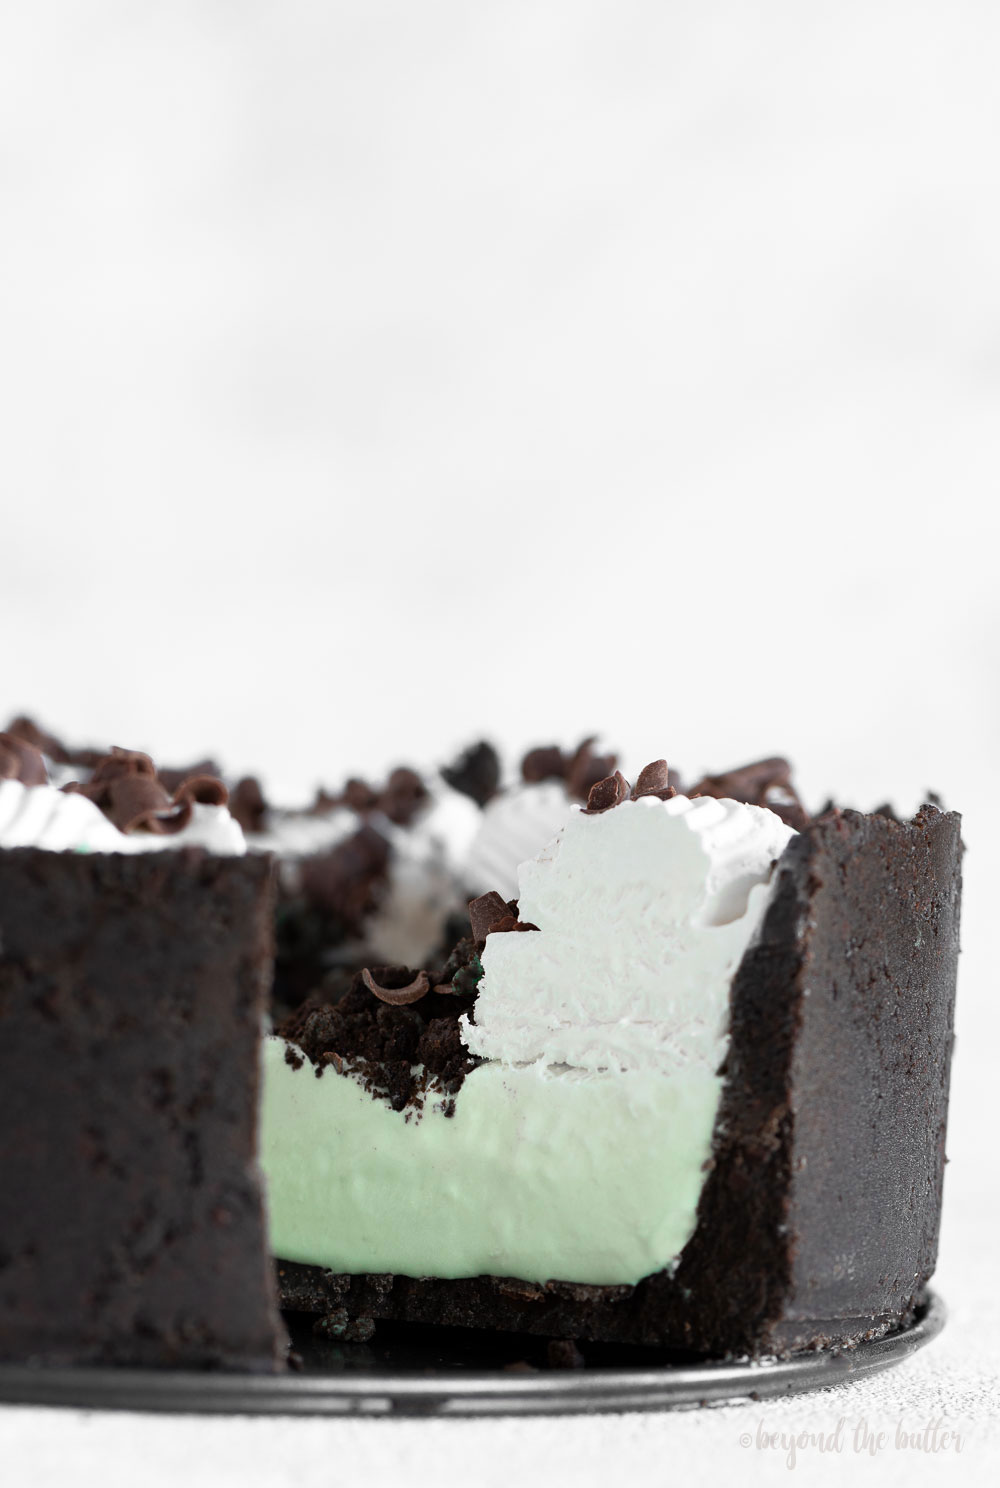 No Bake Mint Chocolate Pie | Up close photo of sliced mint chocolate pie | Image and Copyright Policy: © Beyond the Butter, LLC.